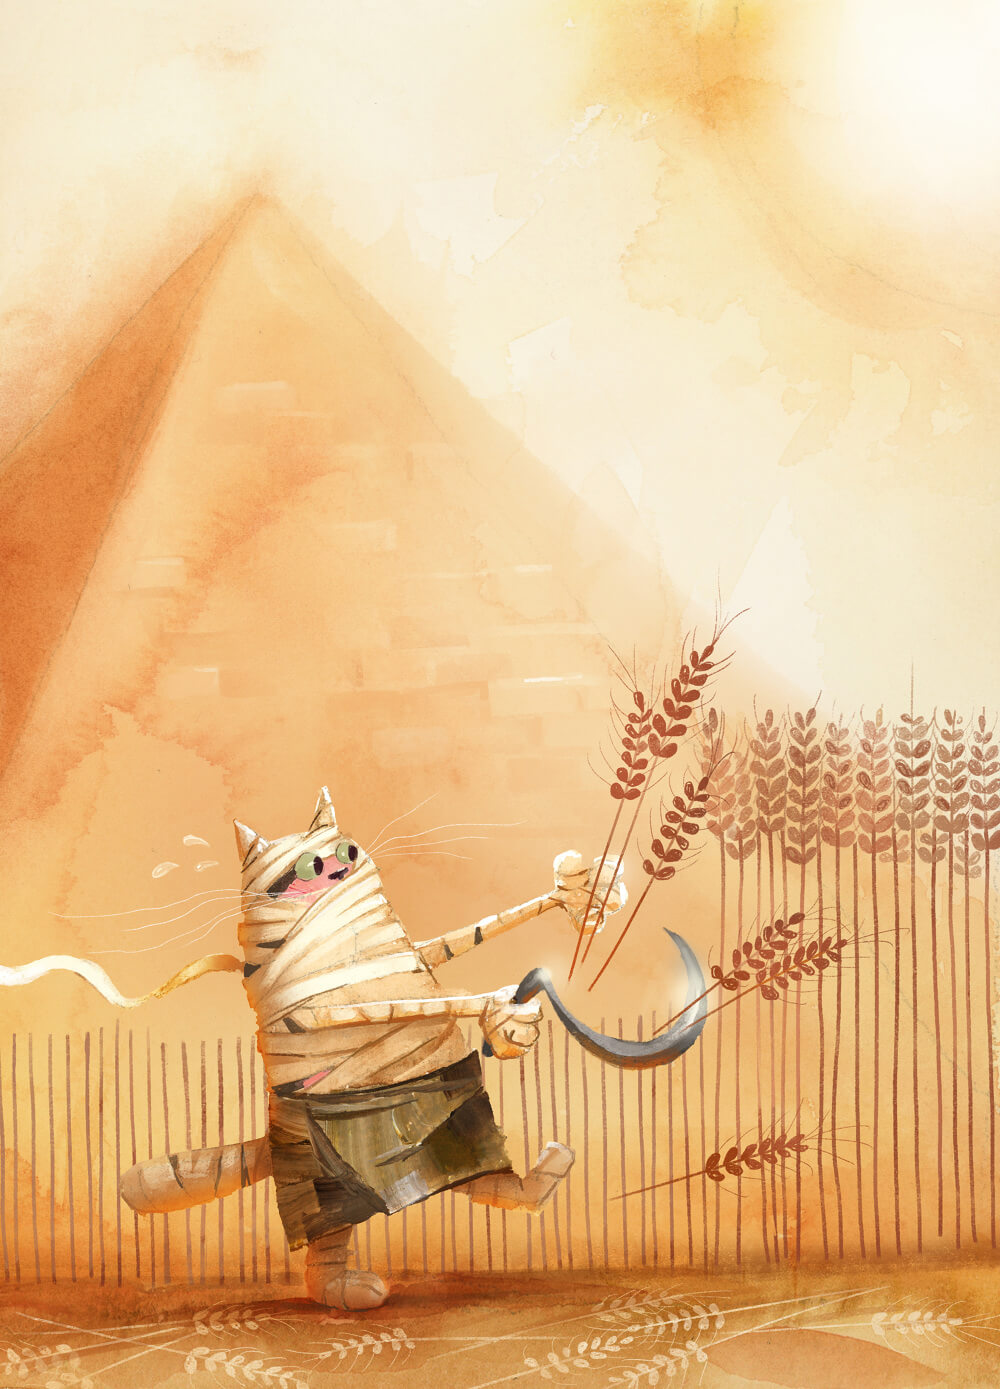 Illustration of mummy cat near a pyramid.